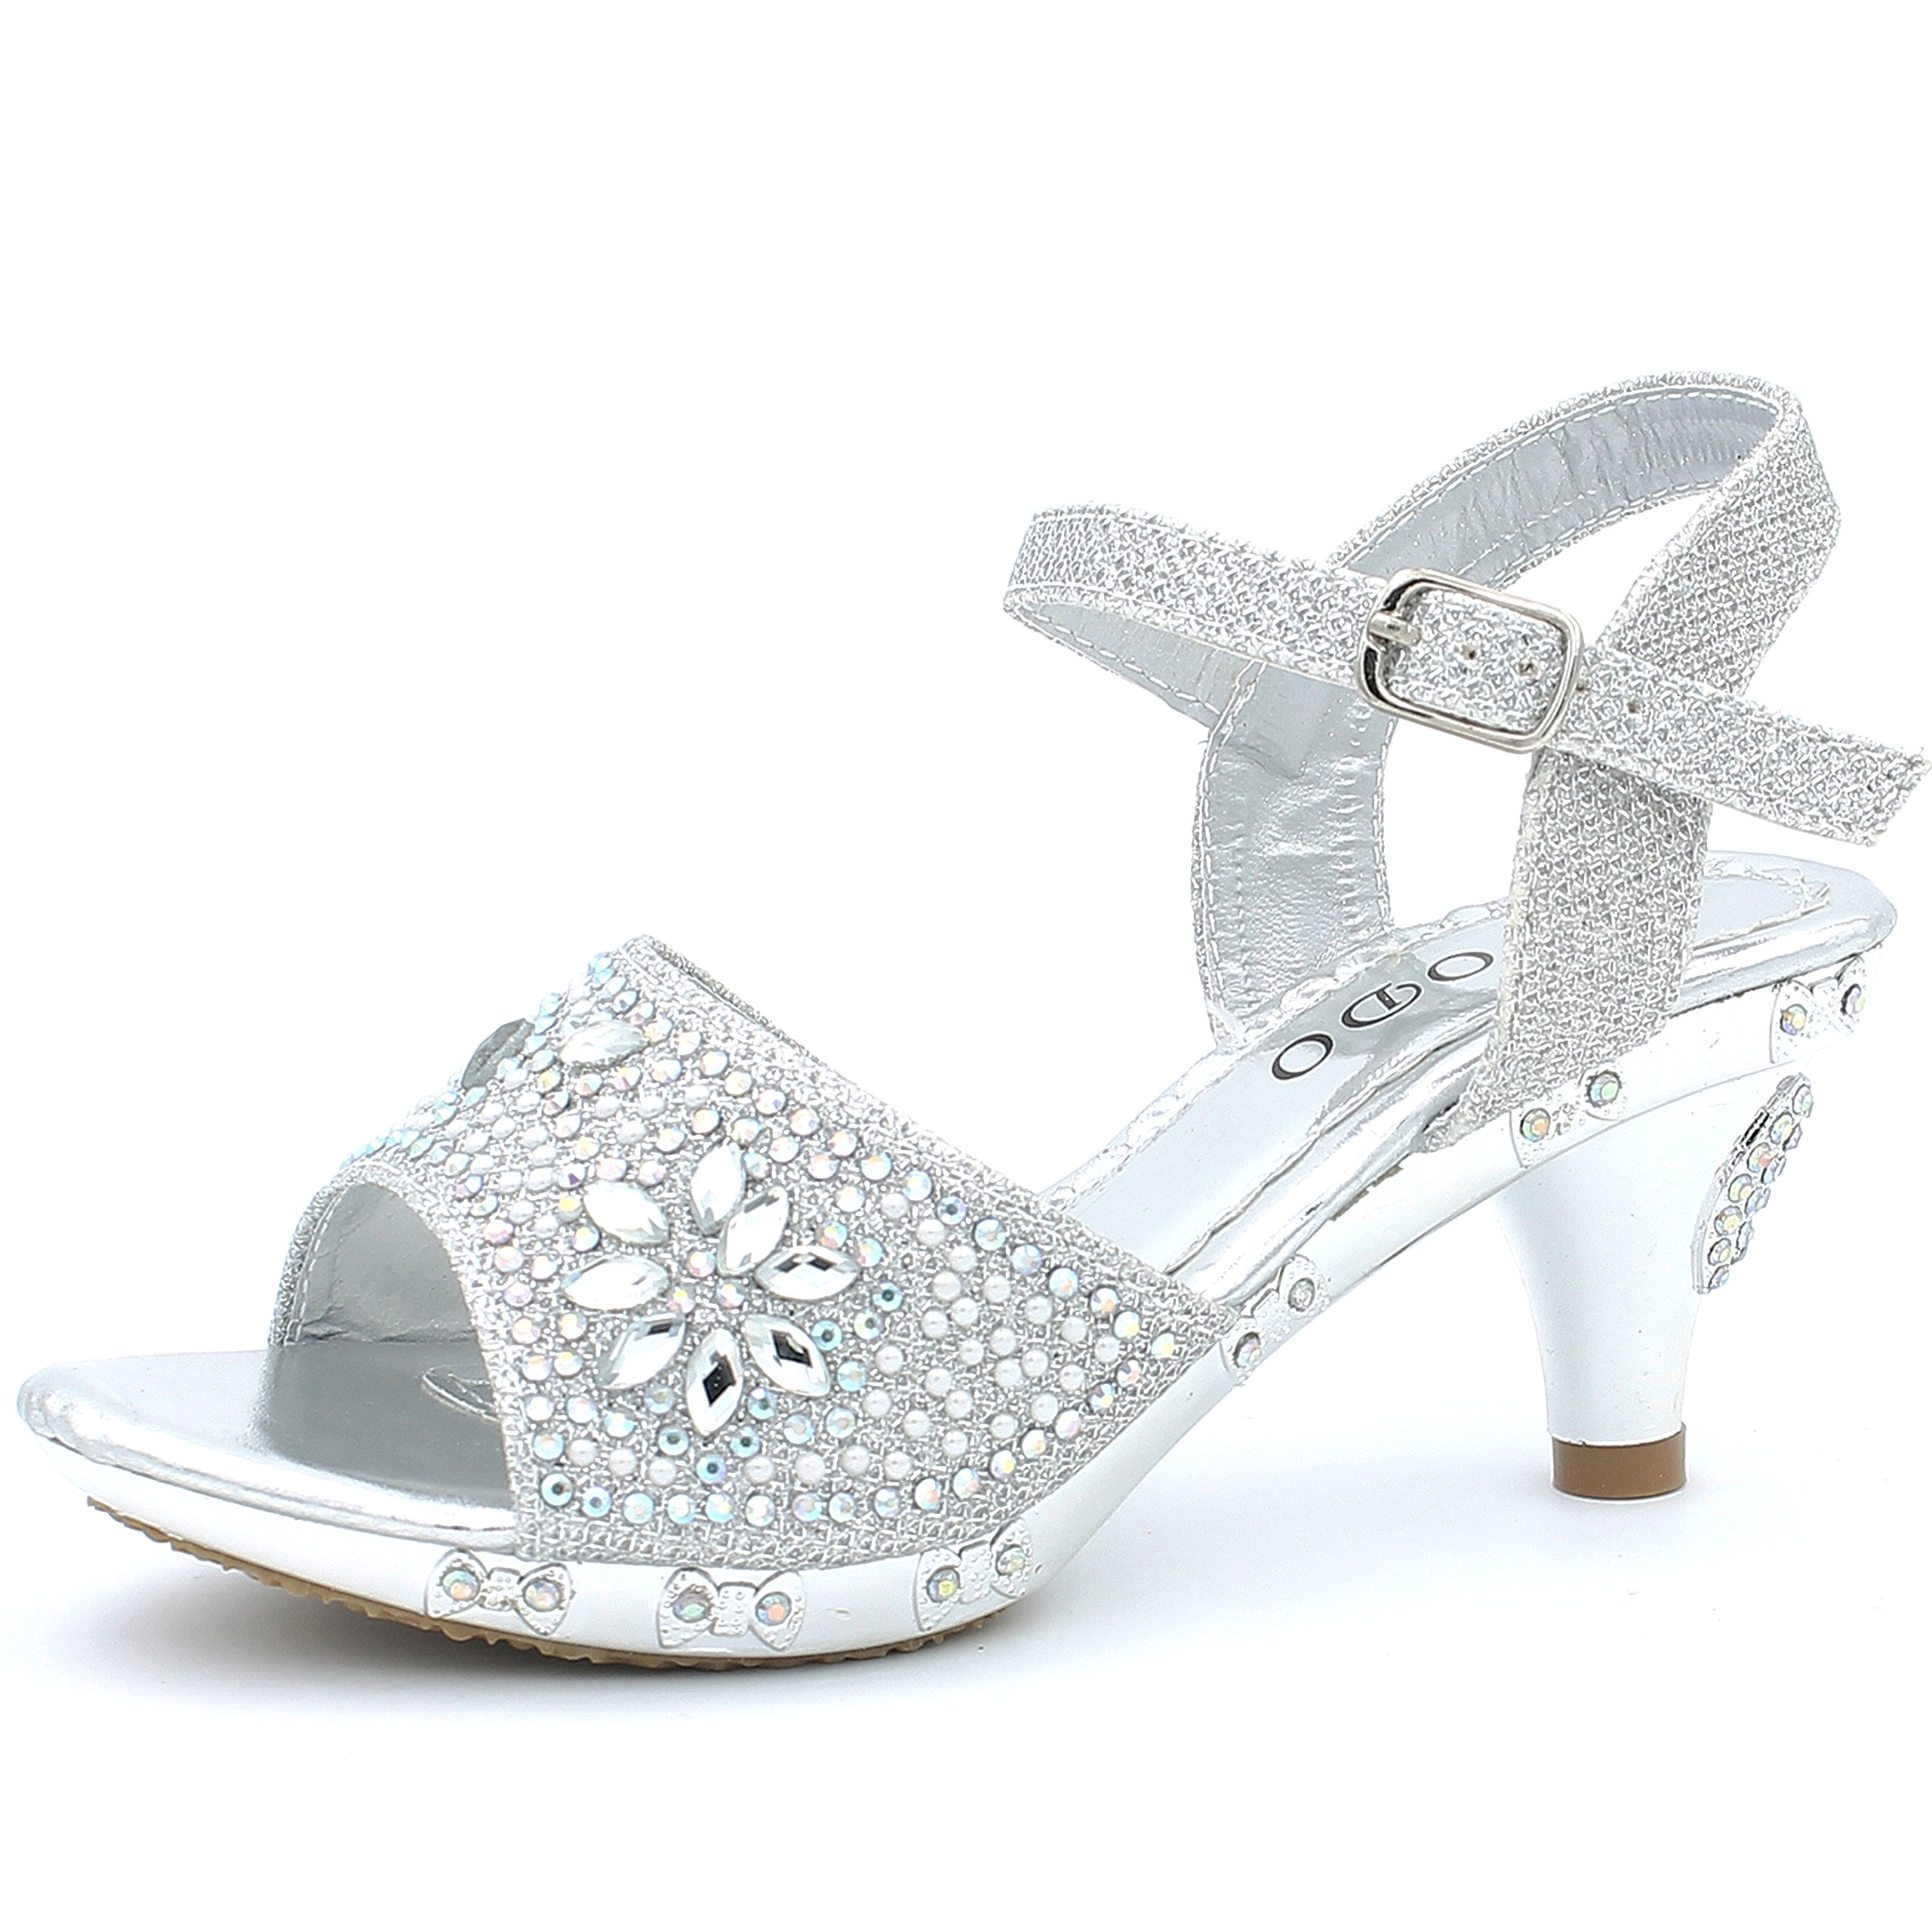 CAKI Toddler Little Big Kid Low Heel Dress Pump Sandals (11 M US Little Kids, Silver)